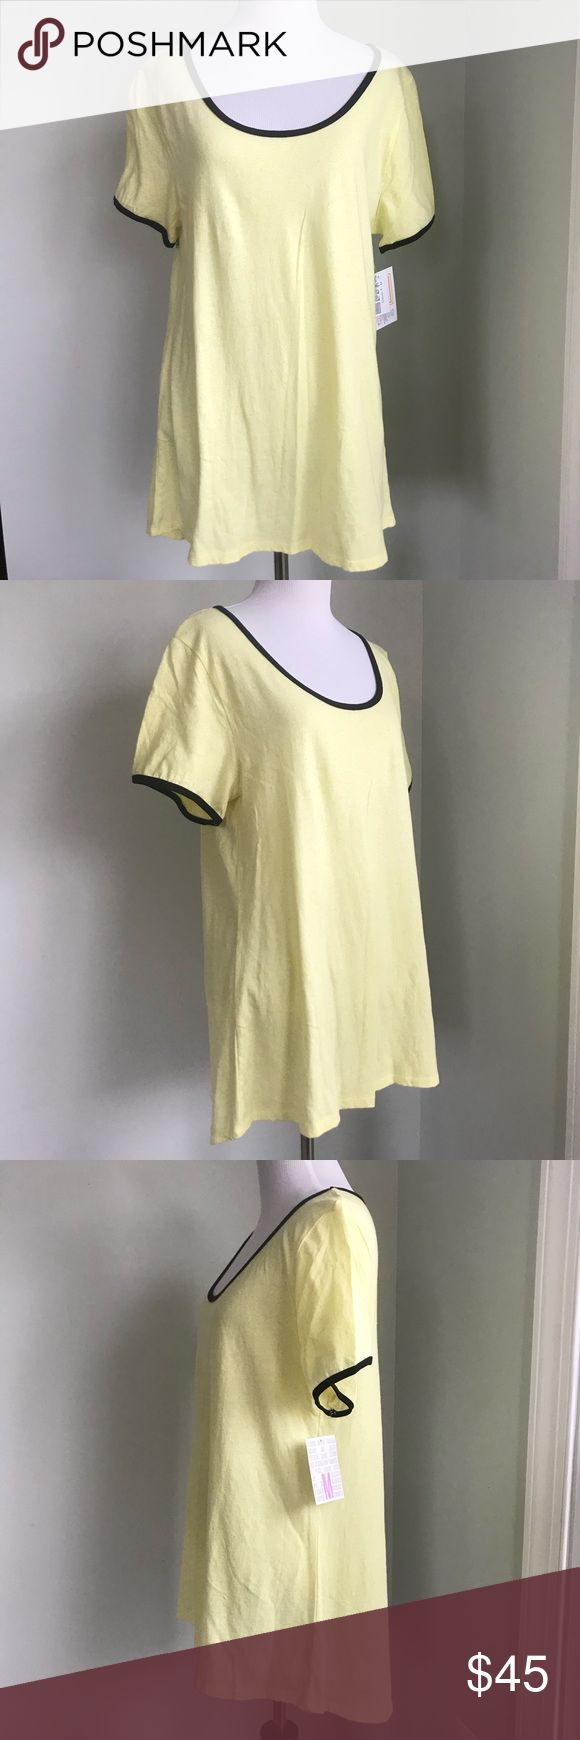 LuLaRoe Yellow and Black Classic T Top Size M Brand New with tags yellow Classic T from LuLaRoe.  Size M.  Black lined scoop neck.  Short sleeves. All over speckled textured fabric.  See close up pictures.  Solid yellow color LuLaRoe Top. LuLaRoe Tops